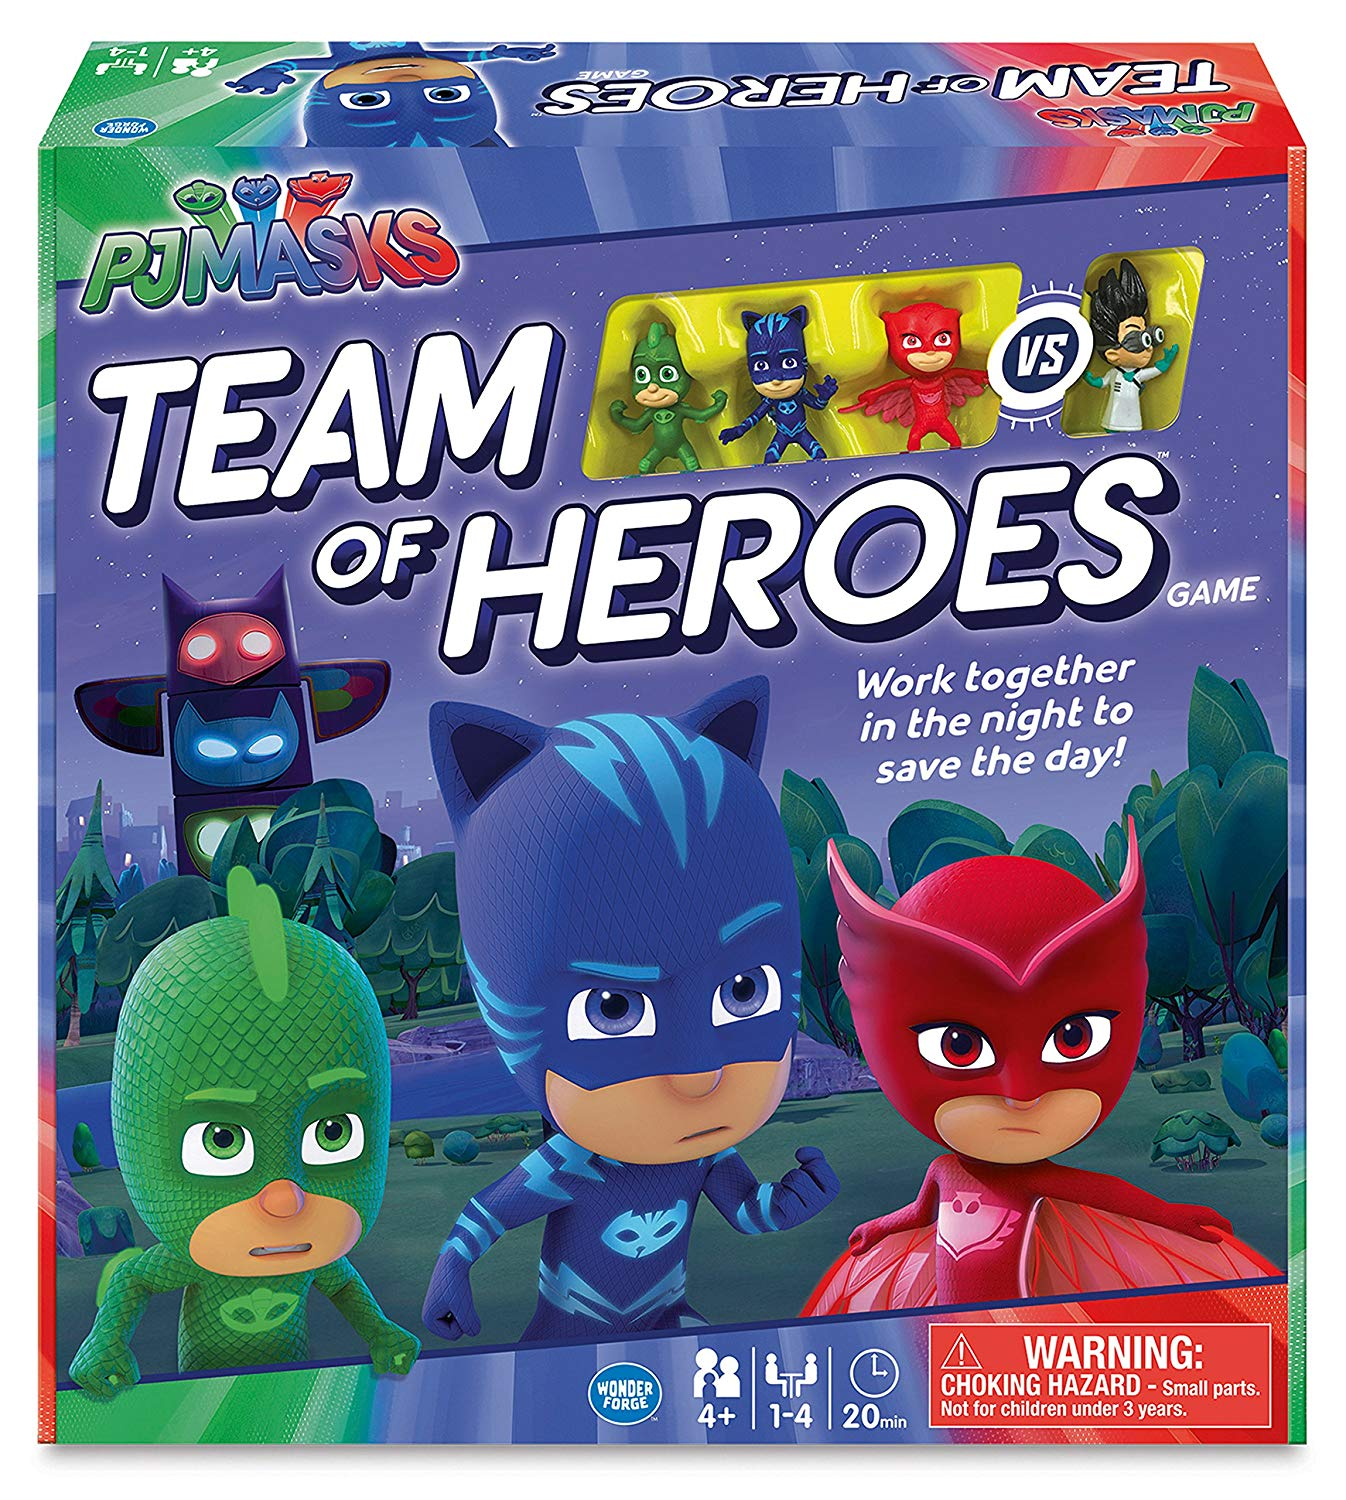 Playing 'PJ Masks Team Of Heroes'